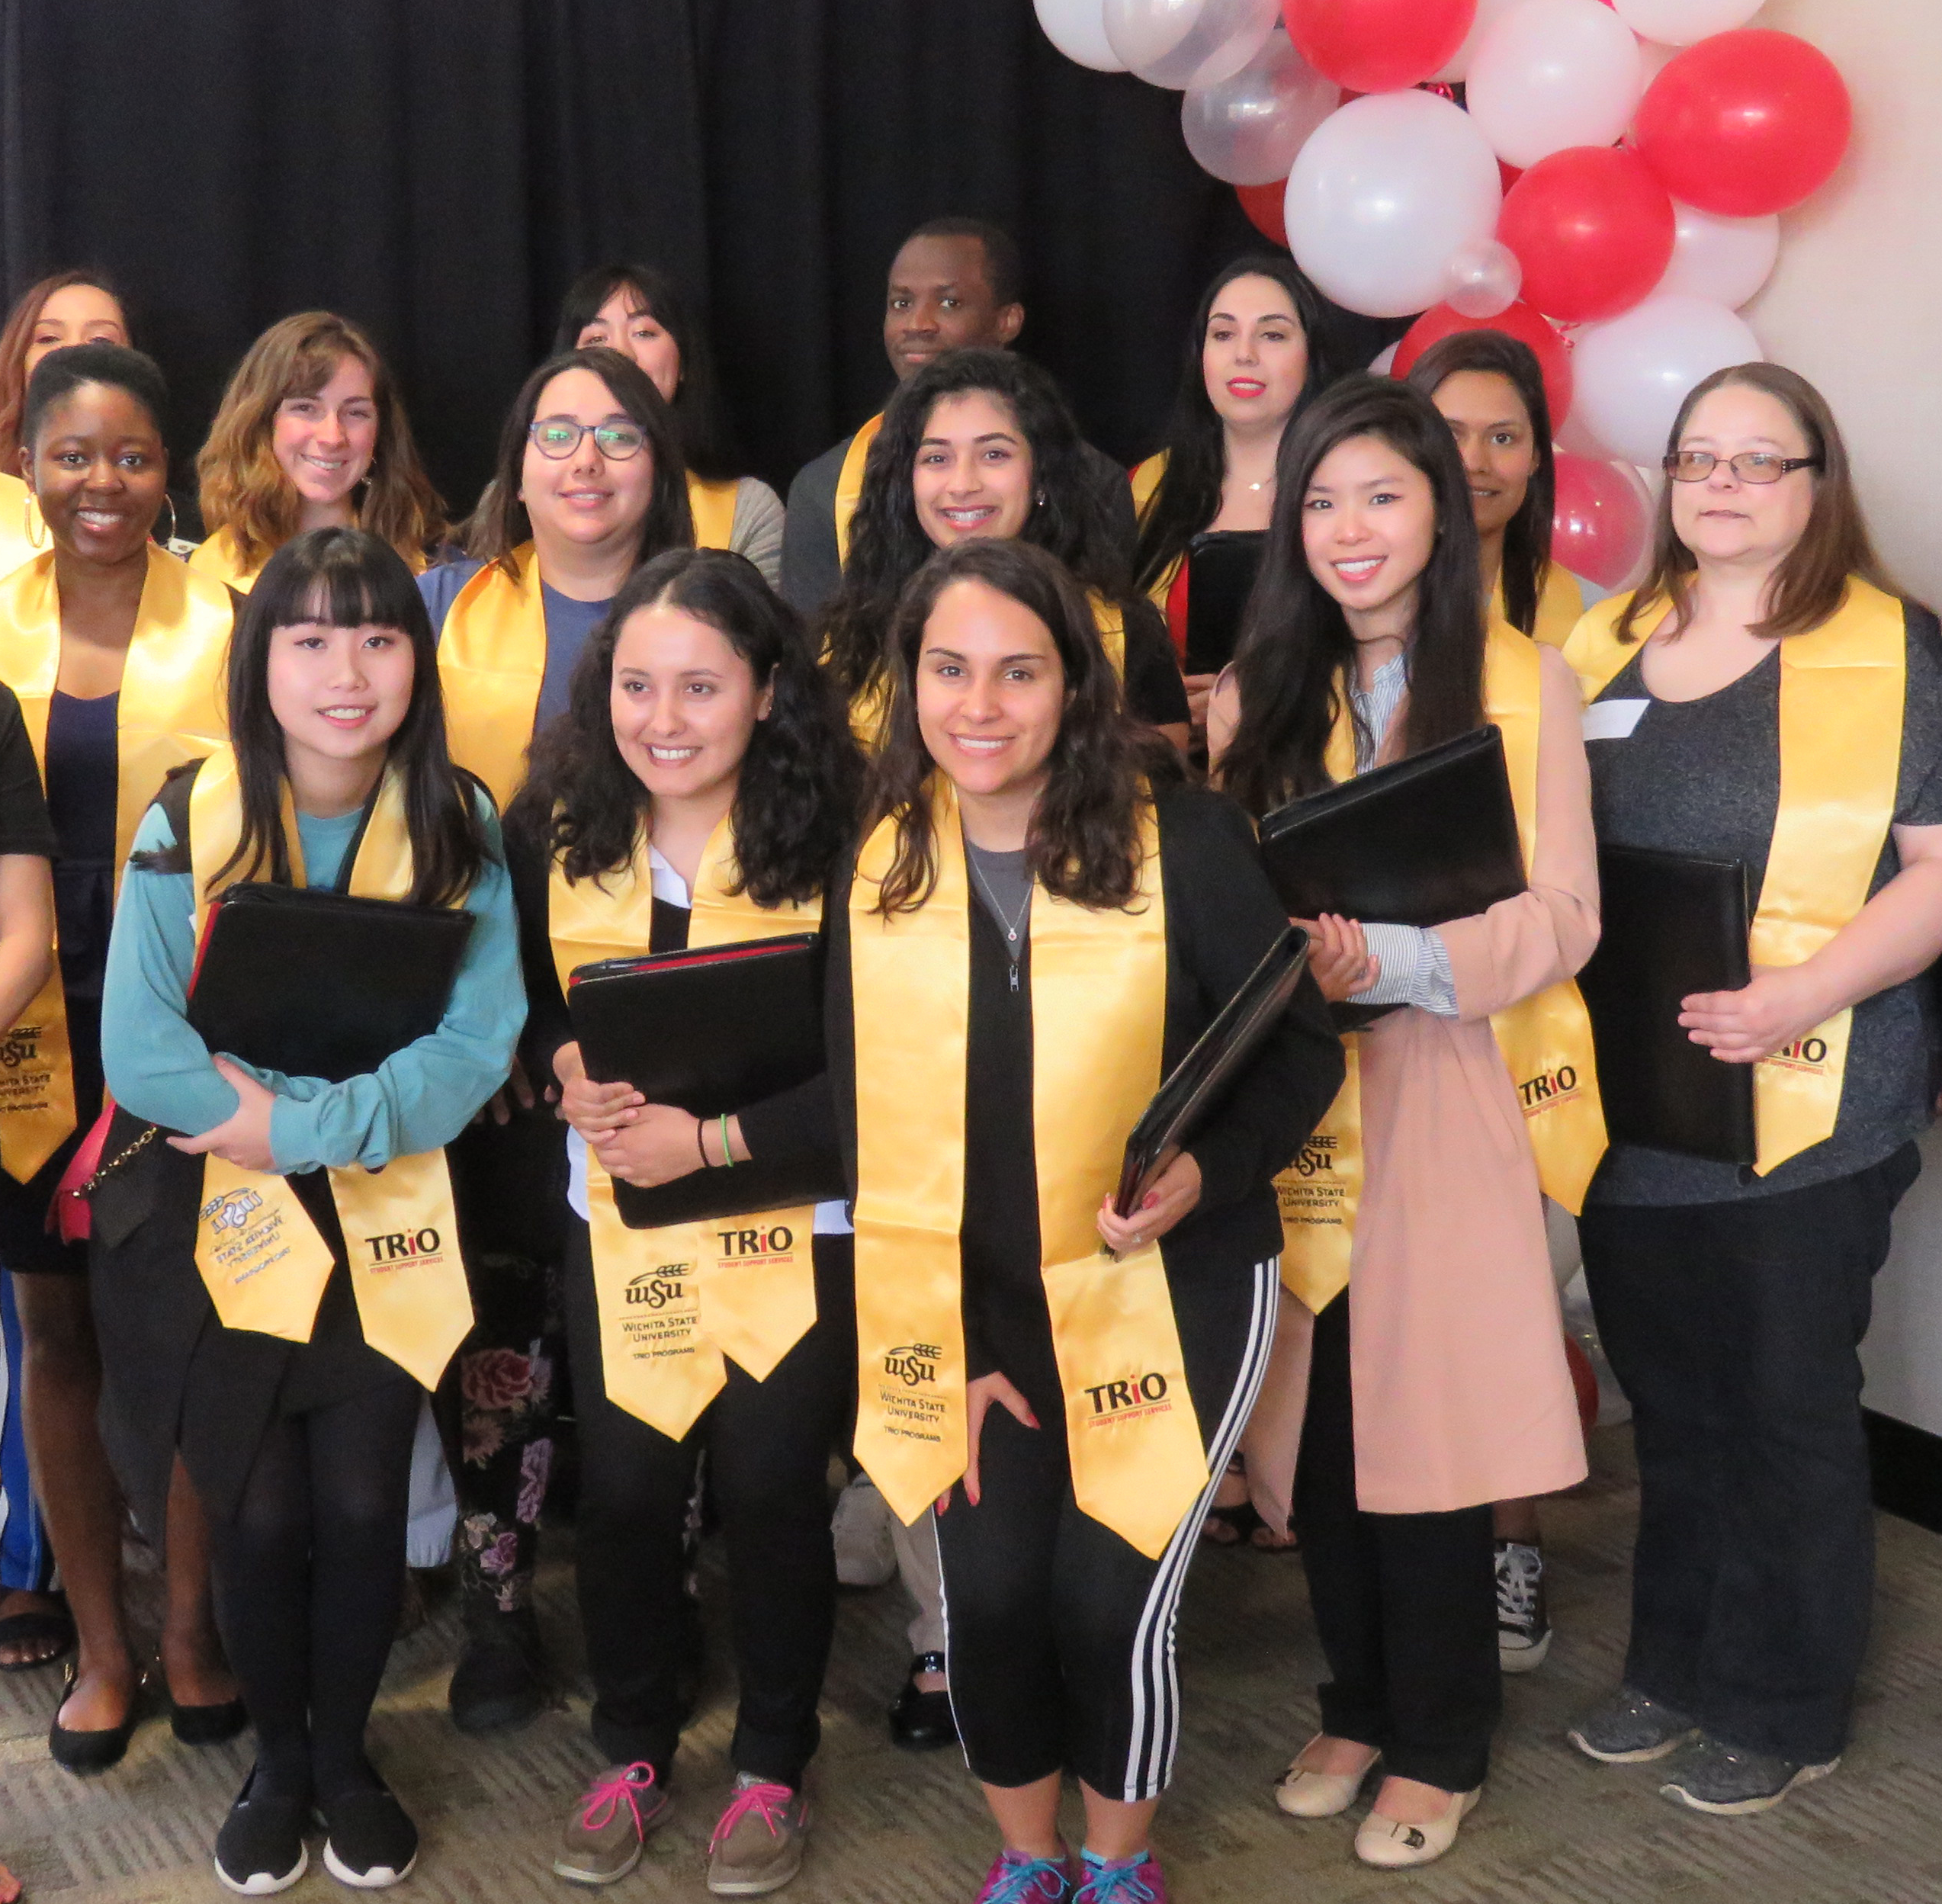 Several TRIO Student Support Services graduates gather for a group photo wearing their TRIO stoles and holding their graduate ceremony gift of a zippered pleather portfolio with big smiles.